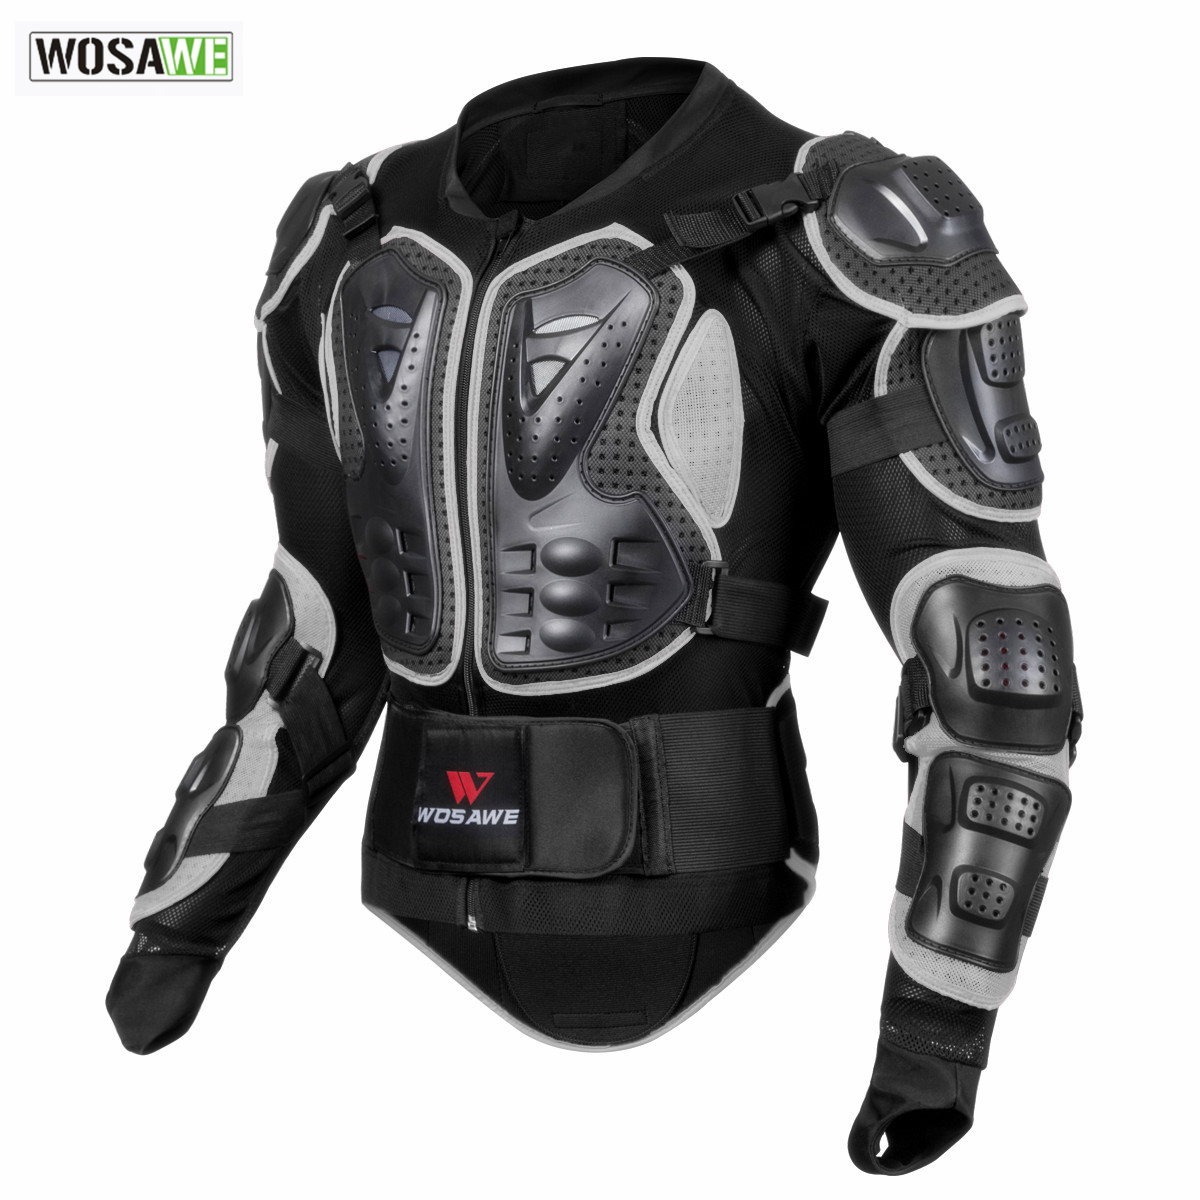 WOSAWE Motorcycle Armor Jacket Body Protection Motorcycle Turtle Racing Moto Cross Back Support Arm Protector